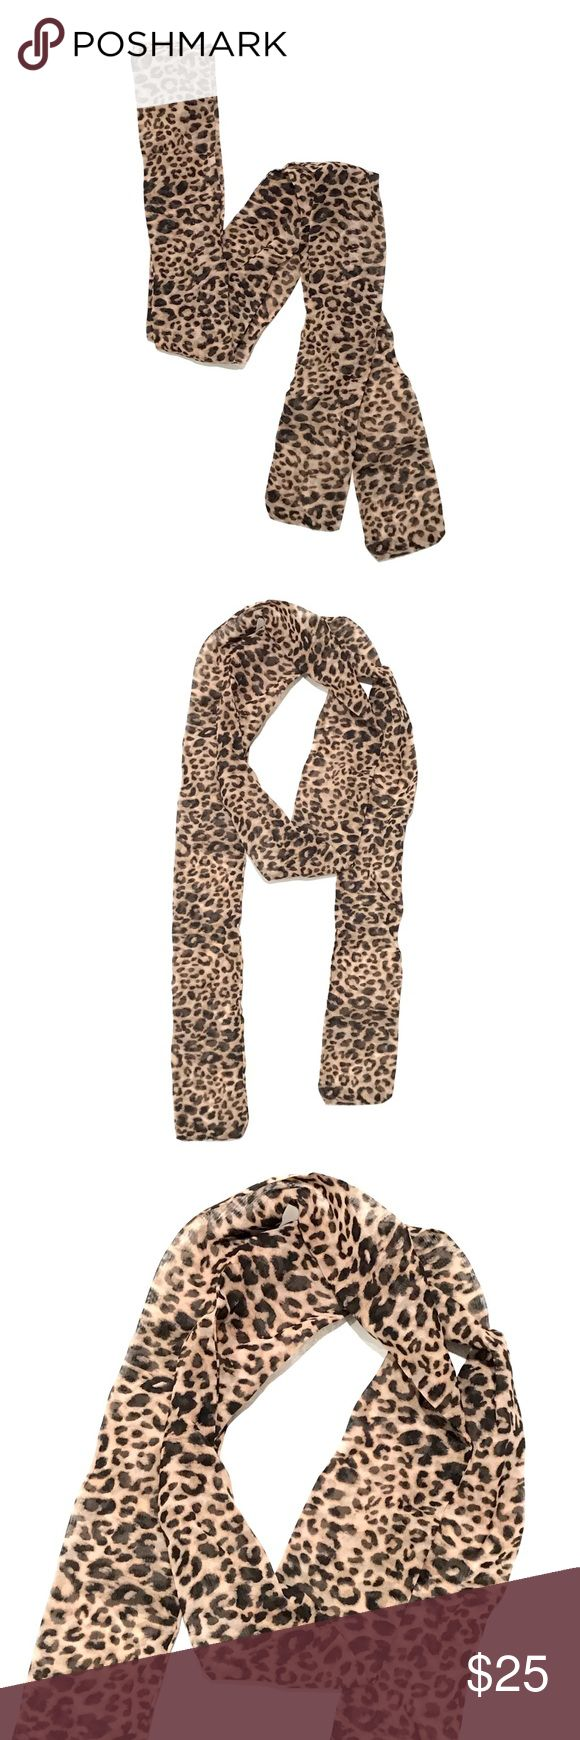 Cheetah / Leopard Print Skinny Wrap Scarf This lightweight neckerchief is the perfect way to top off any outfit. Wear it around your neck or tie it on your purse strap. The animal print will complement all of your sweaters and moto jackets this season.  * PacSun Cheetah / Leopard Print Skinny Wrap Scarf * Skinny * Lightweight * 3'' x 70''  * 100% polyester * New with tags! PacSun Accessories Scarves & Wraps